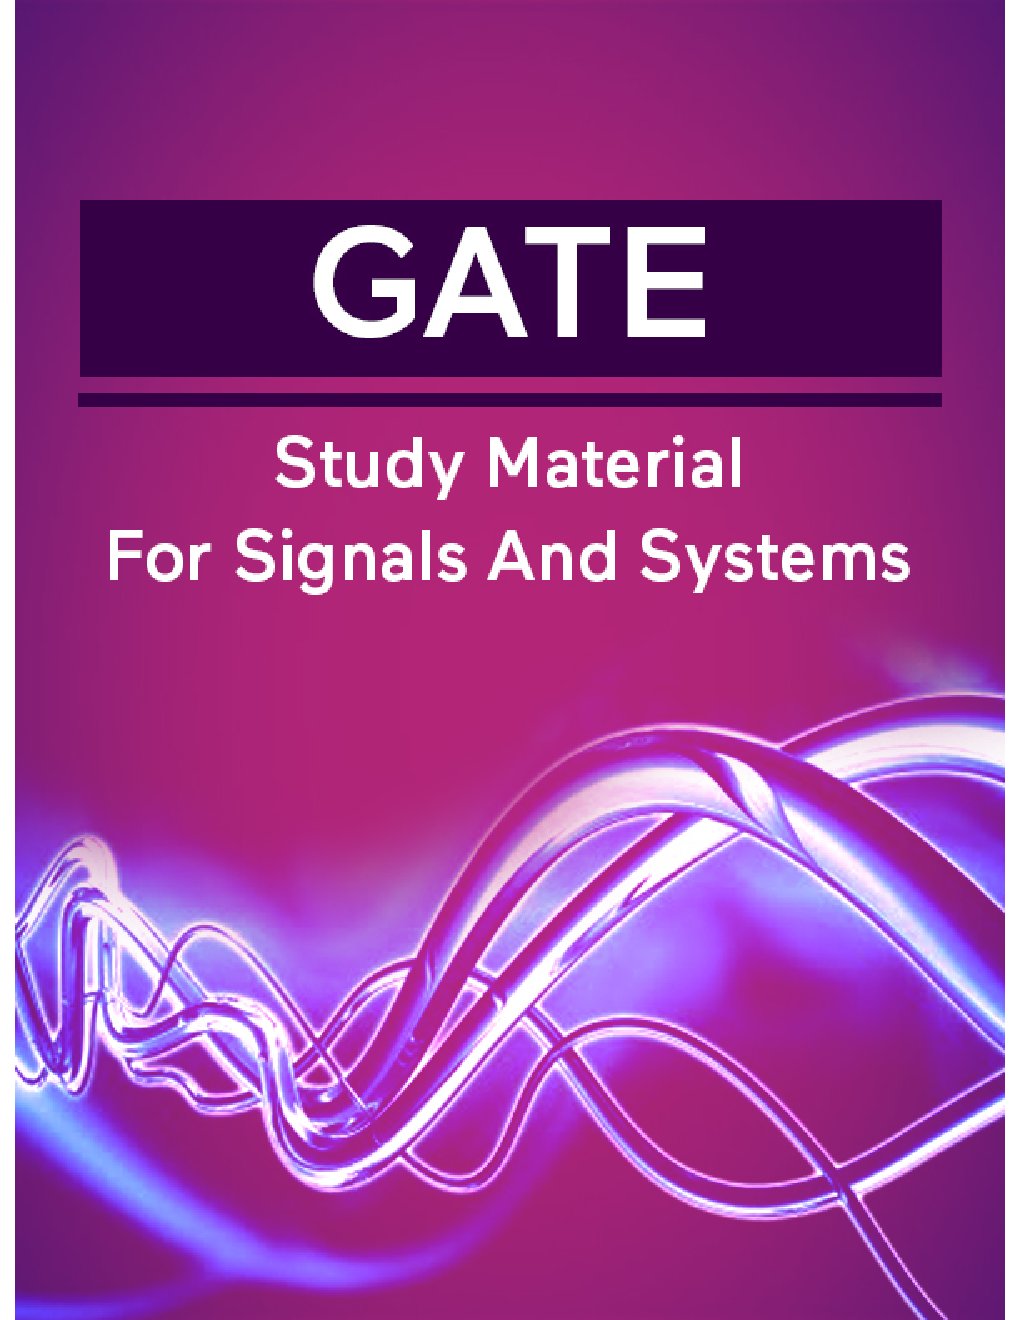 GATE Study Material For Signals And Systems - Page 1